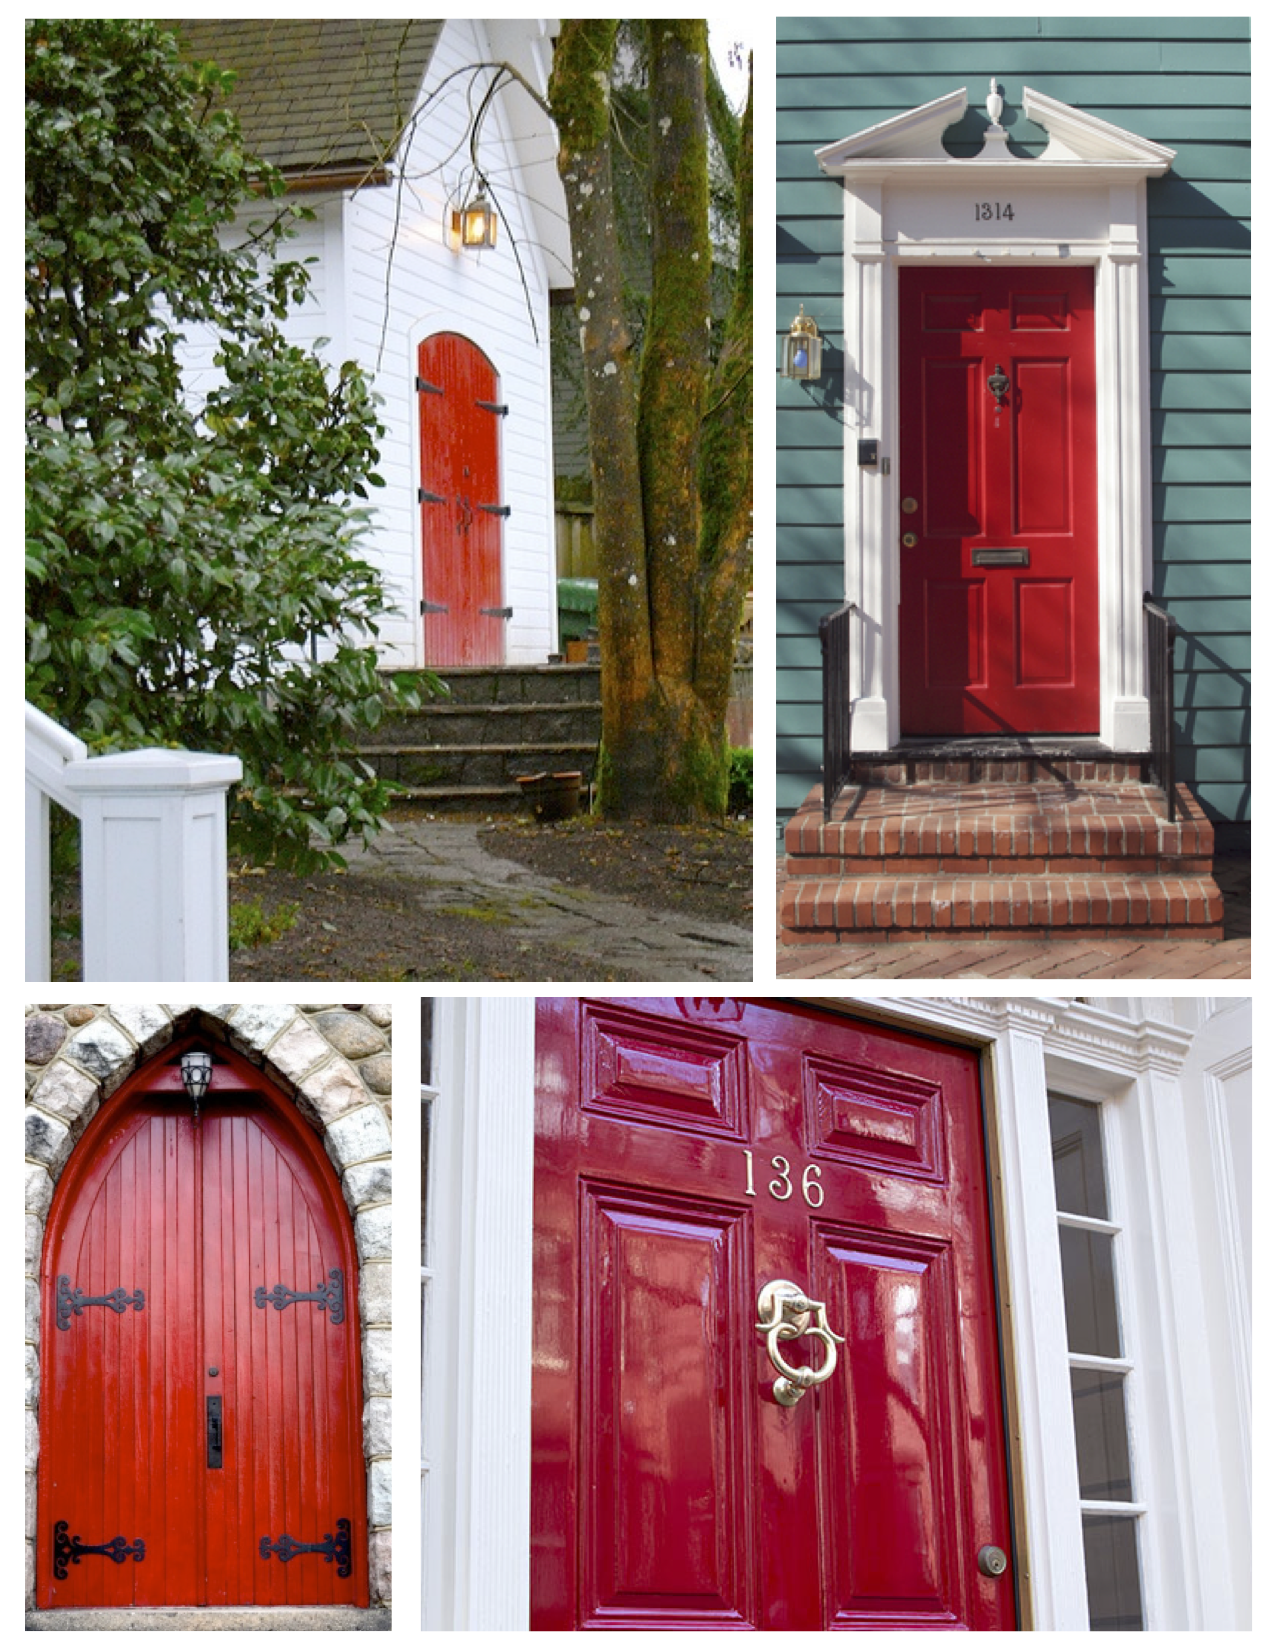 ... Striking Impact: The Painted Red Exterior Door